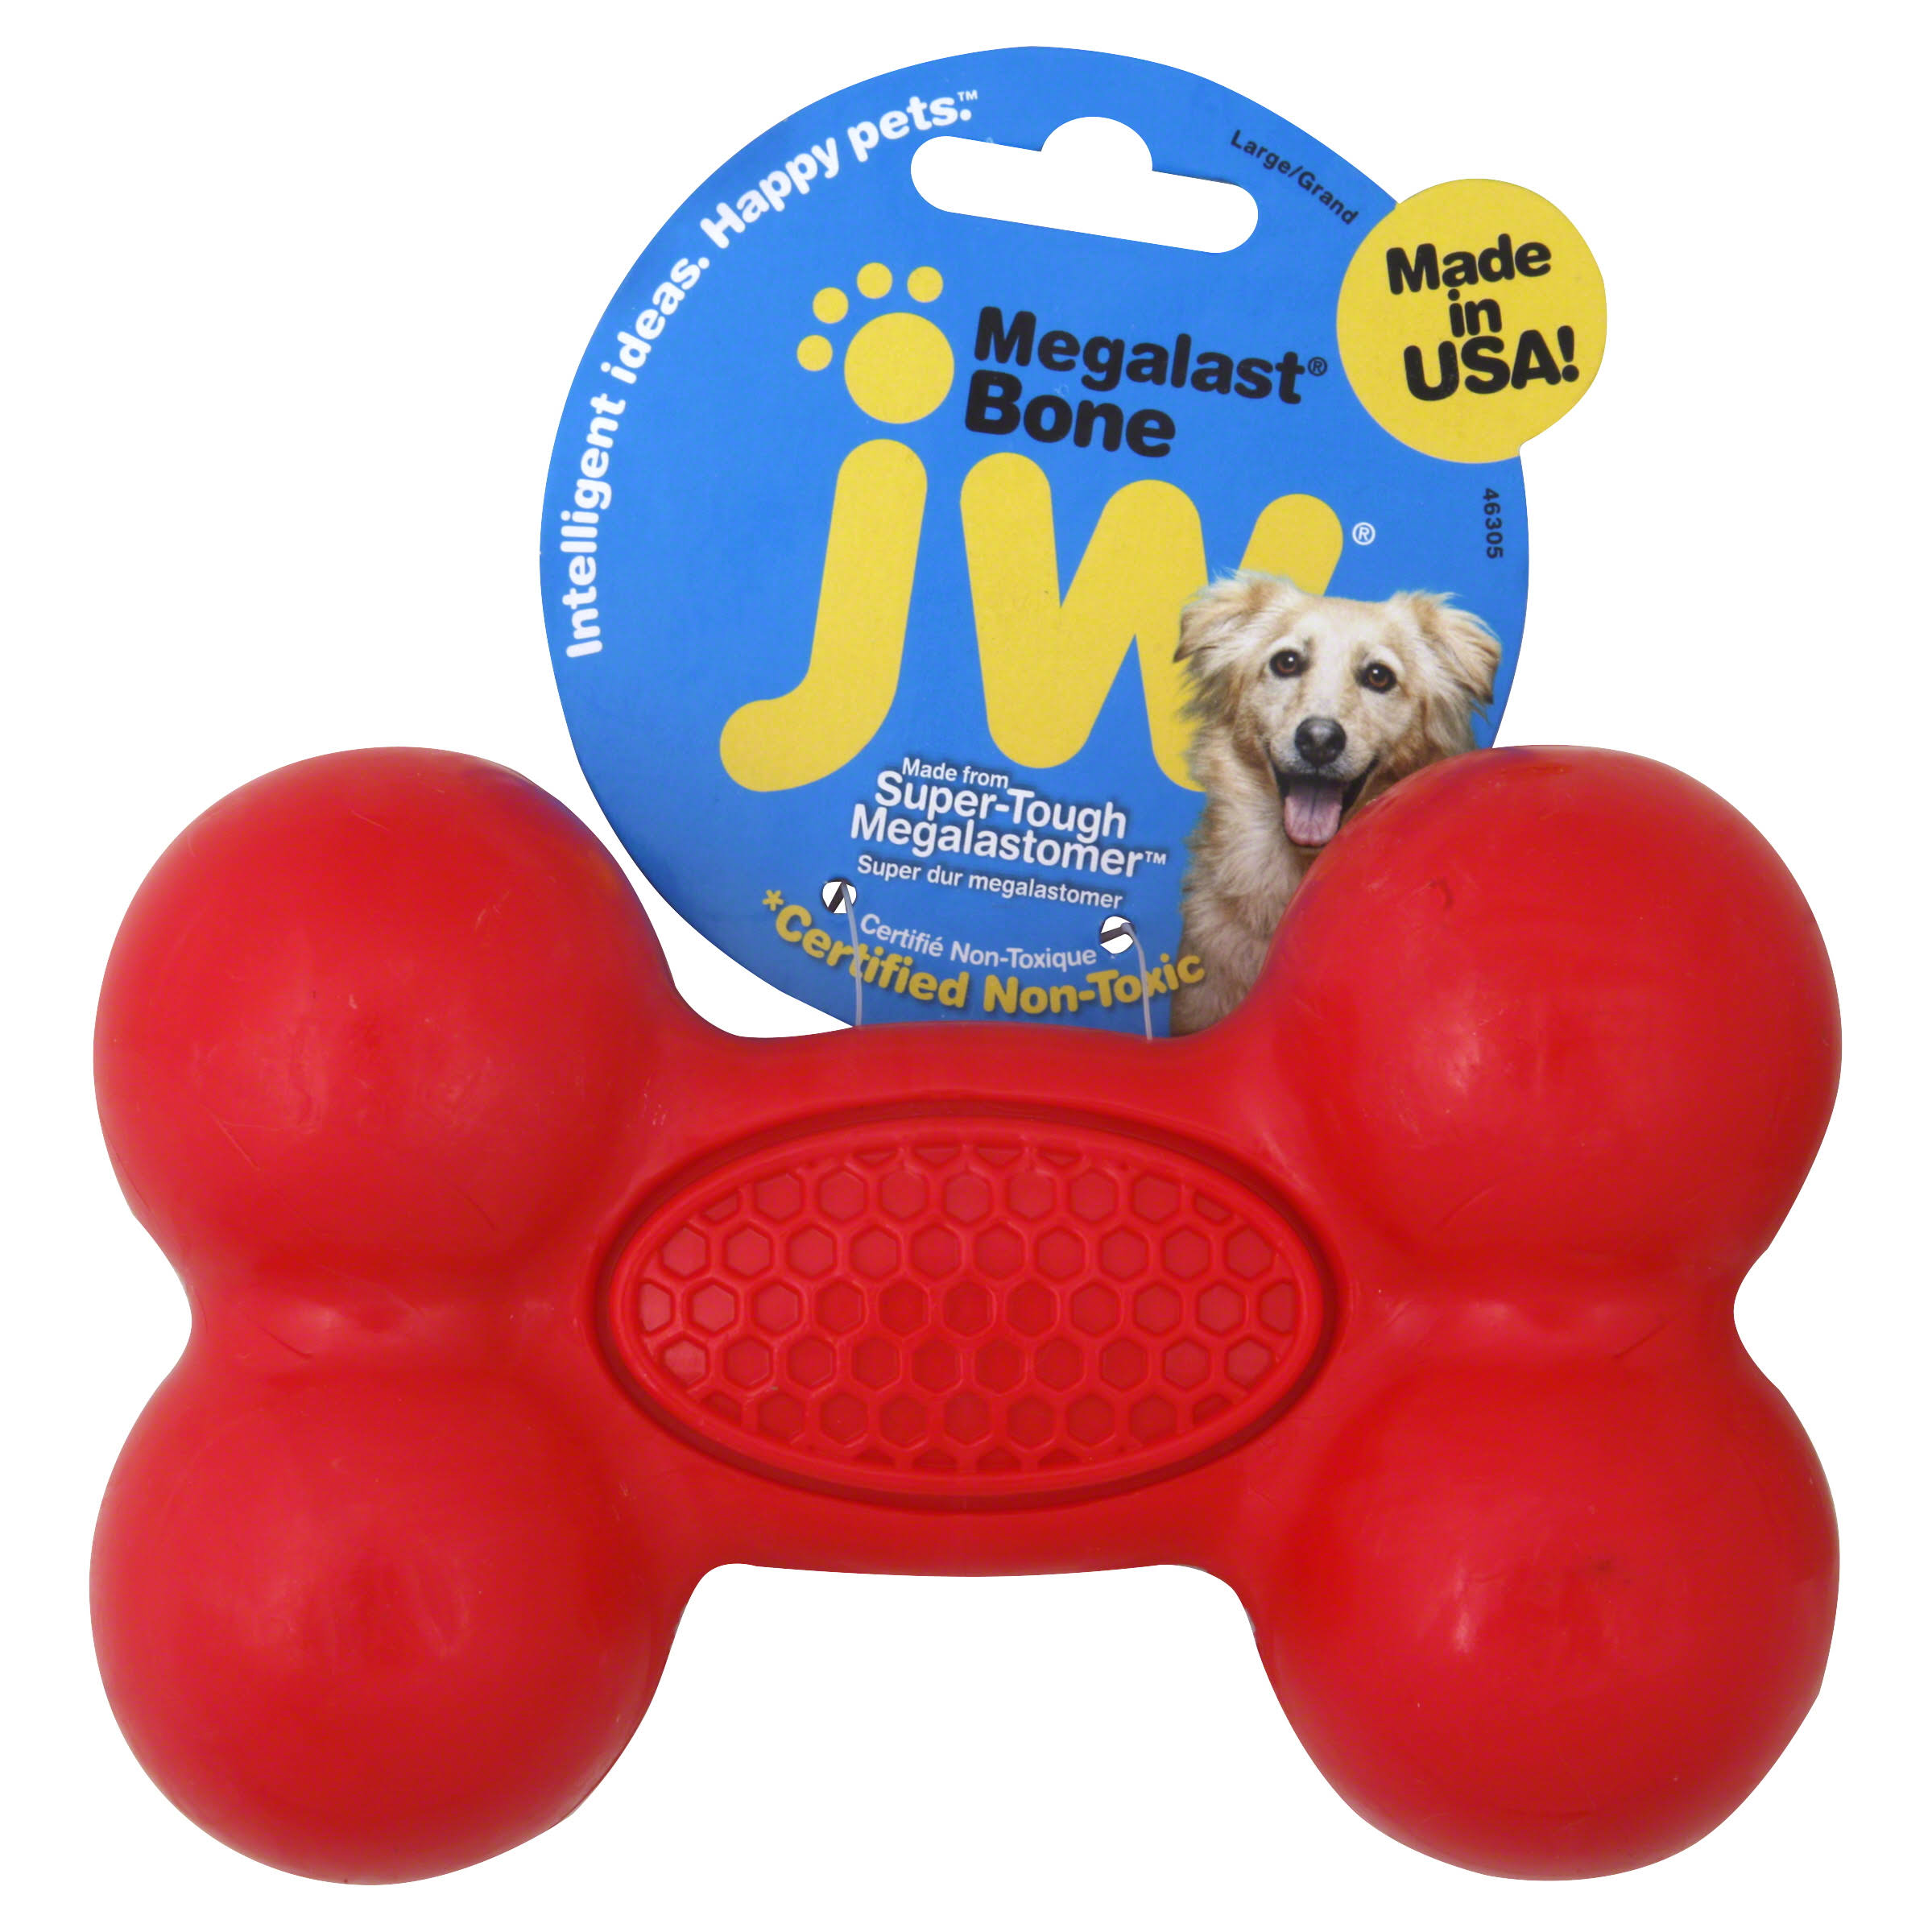 JW Pet Company Megalast Bone Dog Toy